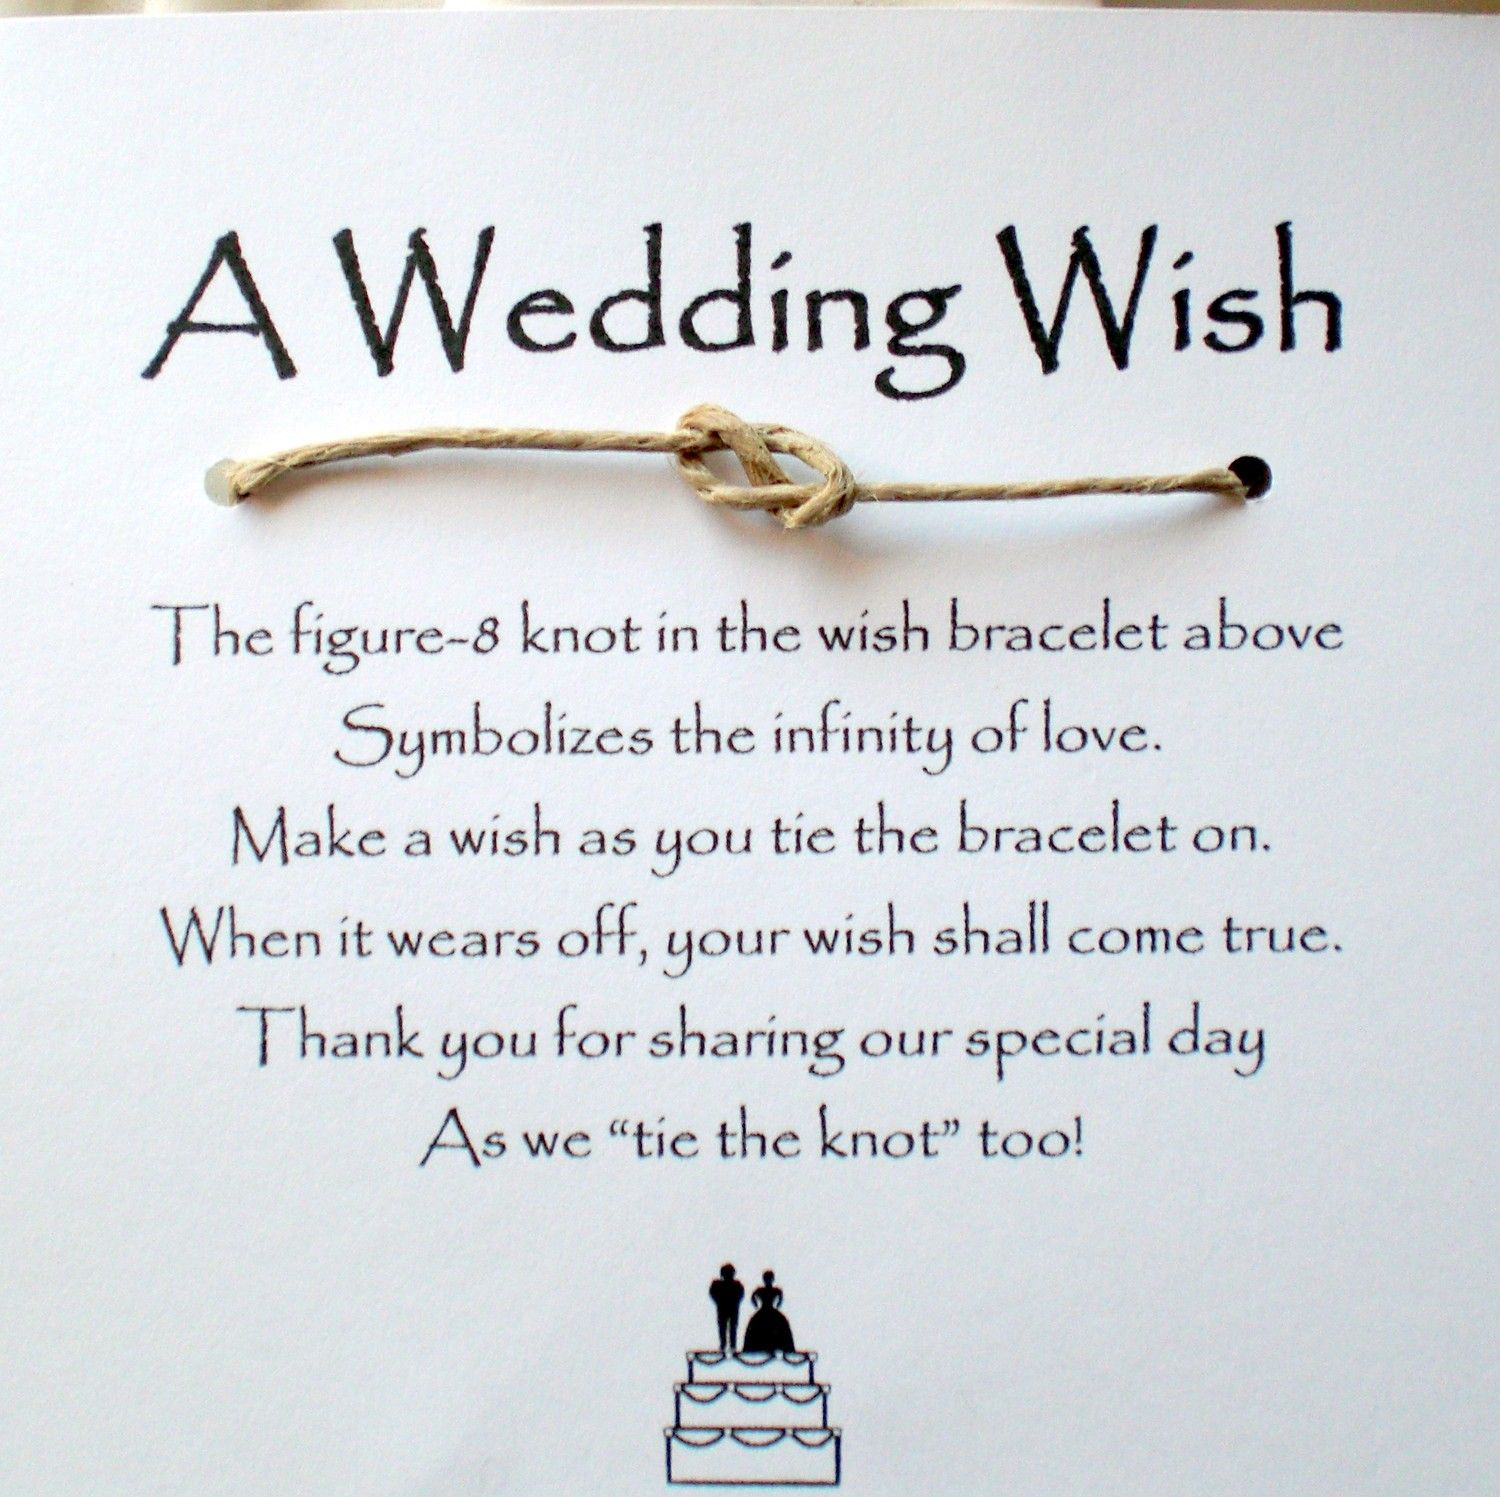 Wedding wish favors | Infinity, Favours and Wedding